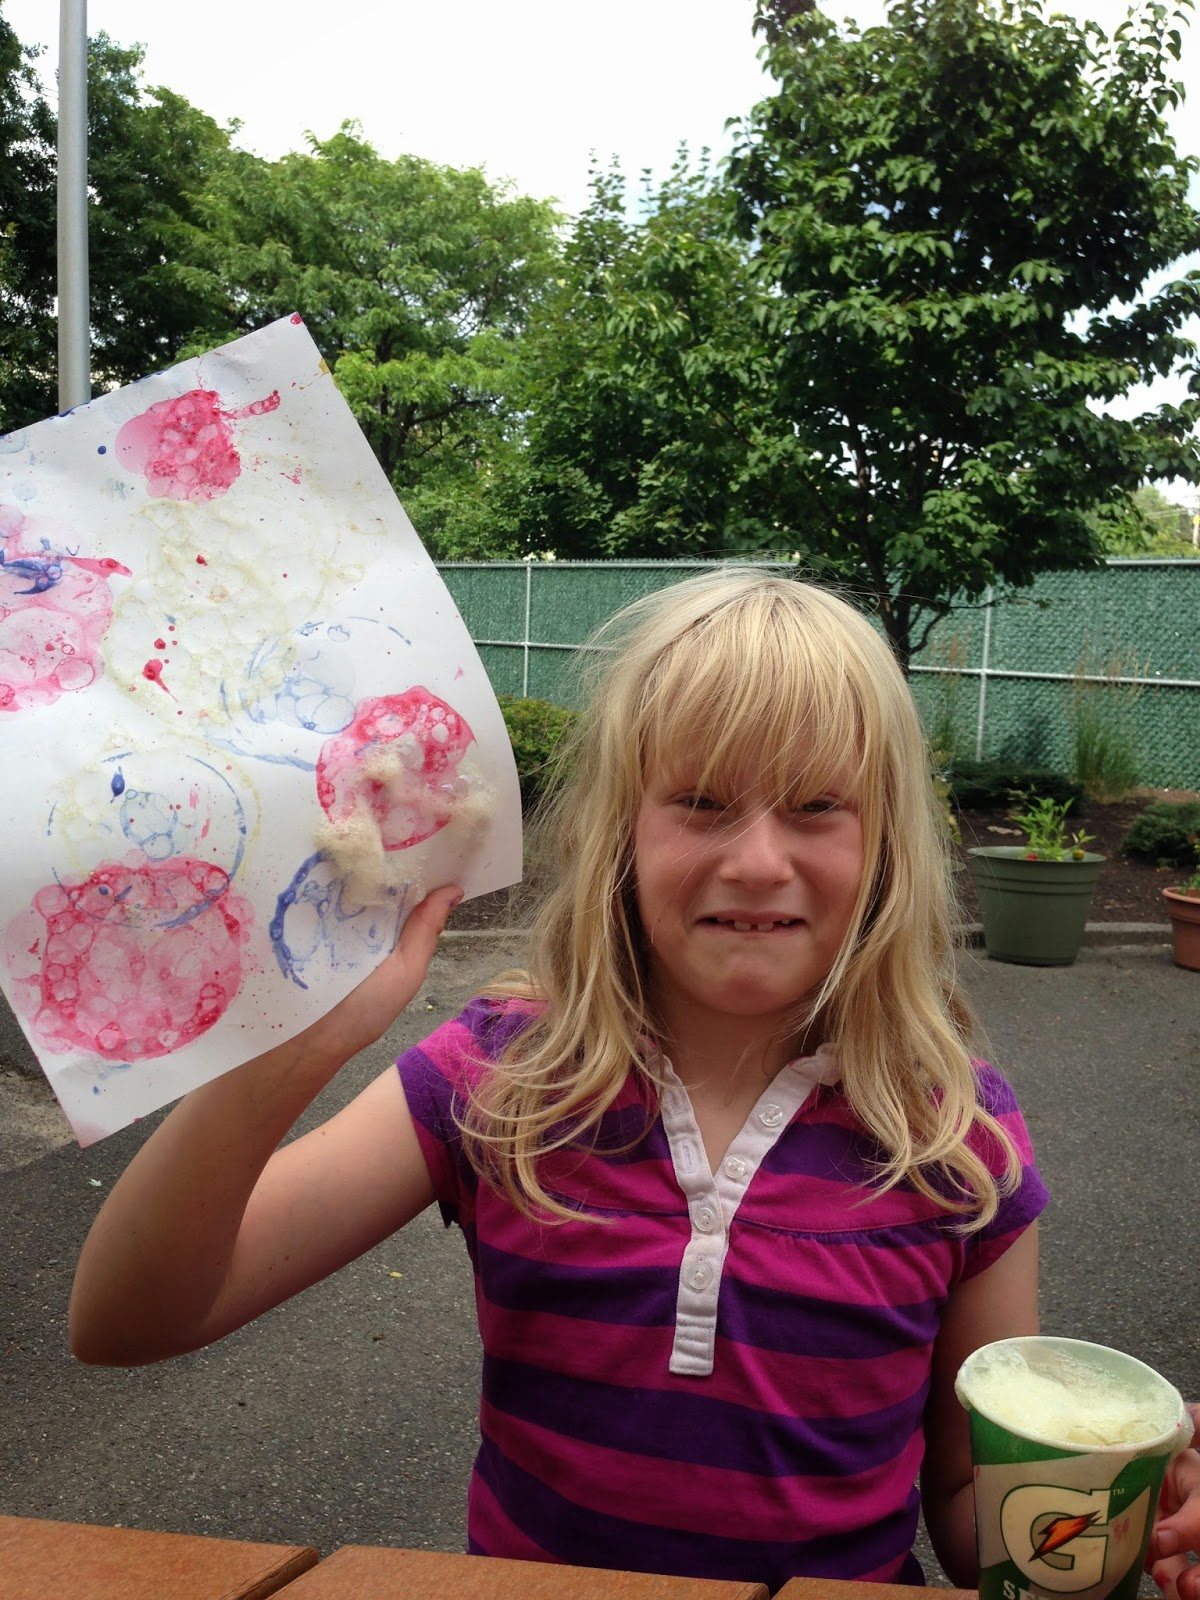 Bubble Painting with Palmolive Dish Soap from Hi! It's Jilly. A fun and easy craft for kids. #shop #Palmolive25Ways #crafts #painting #bubbles